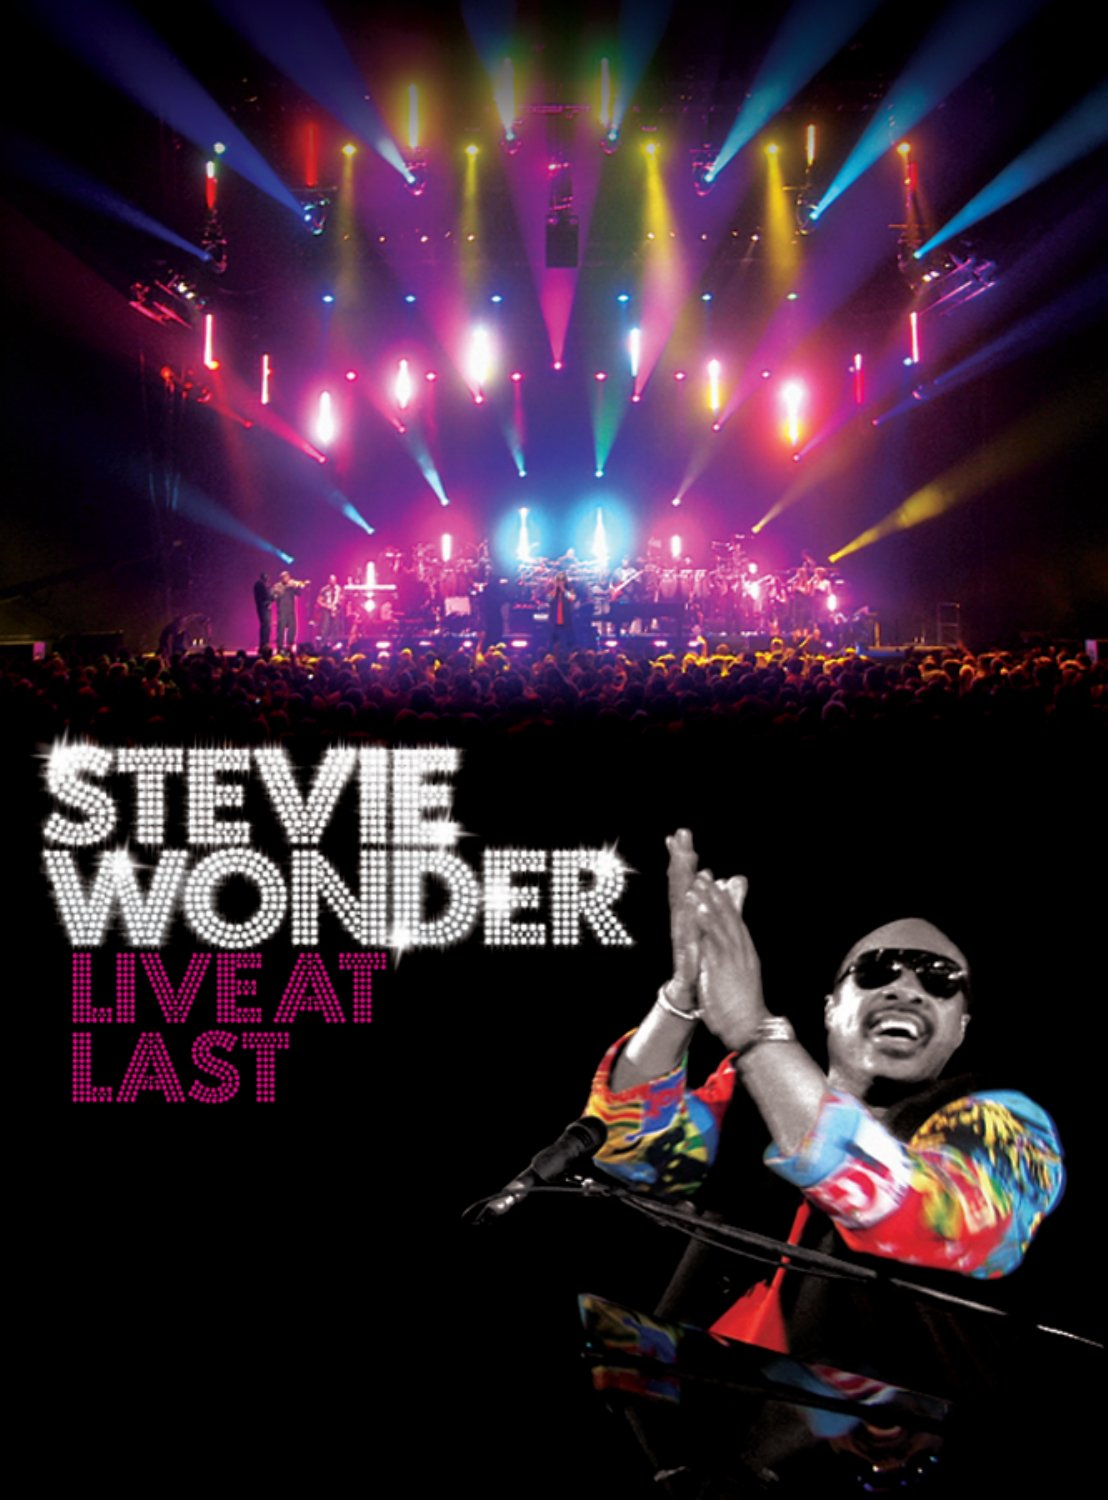 gue nonton konser stevie wonder live at last a wonder summer s night ...